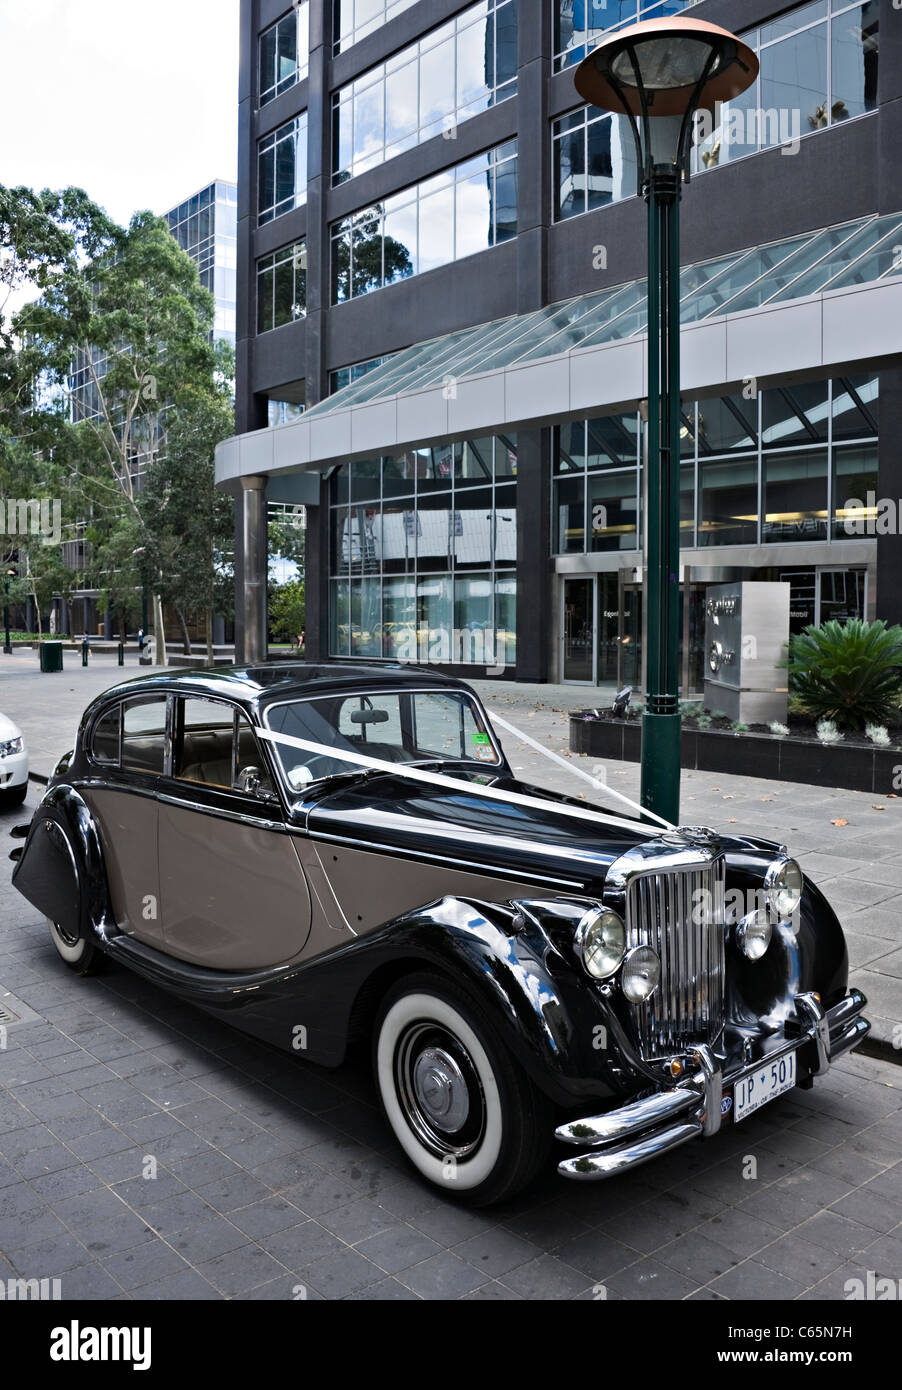 A Vintage Jaguar Mk V Limousine Car Used As Wedding Transport In